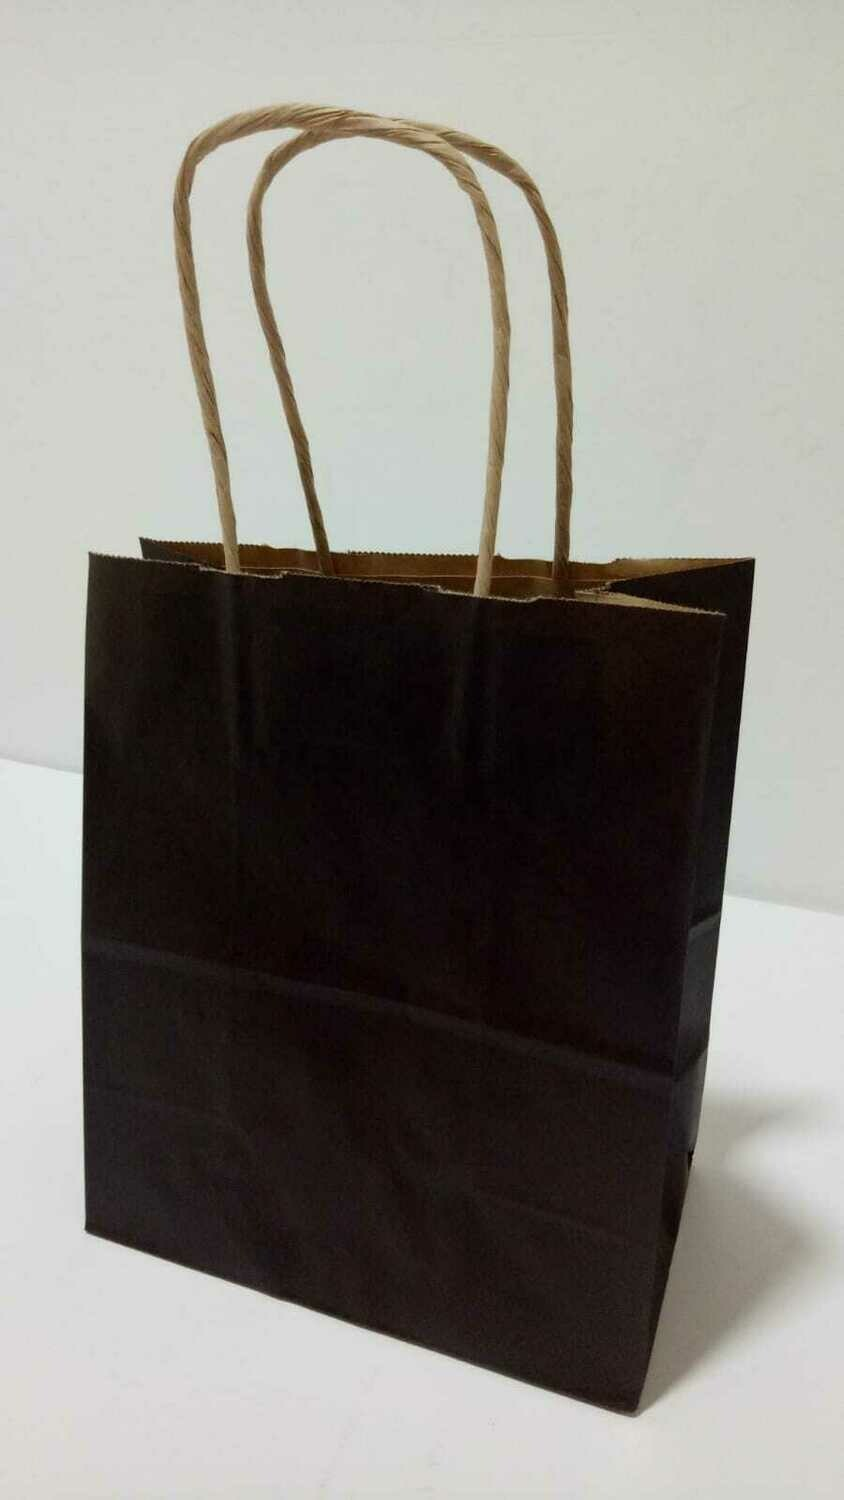 Paper Bags from Japan